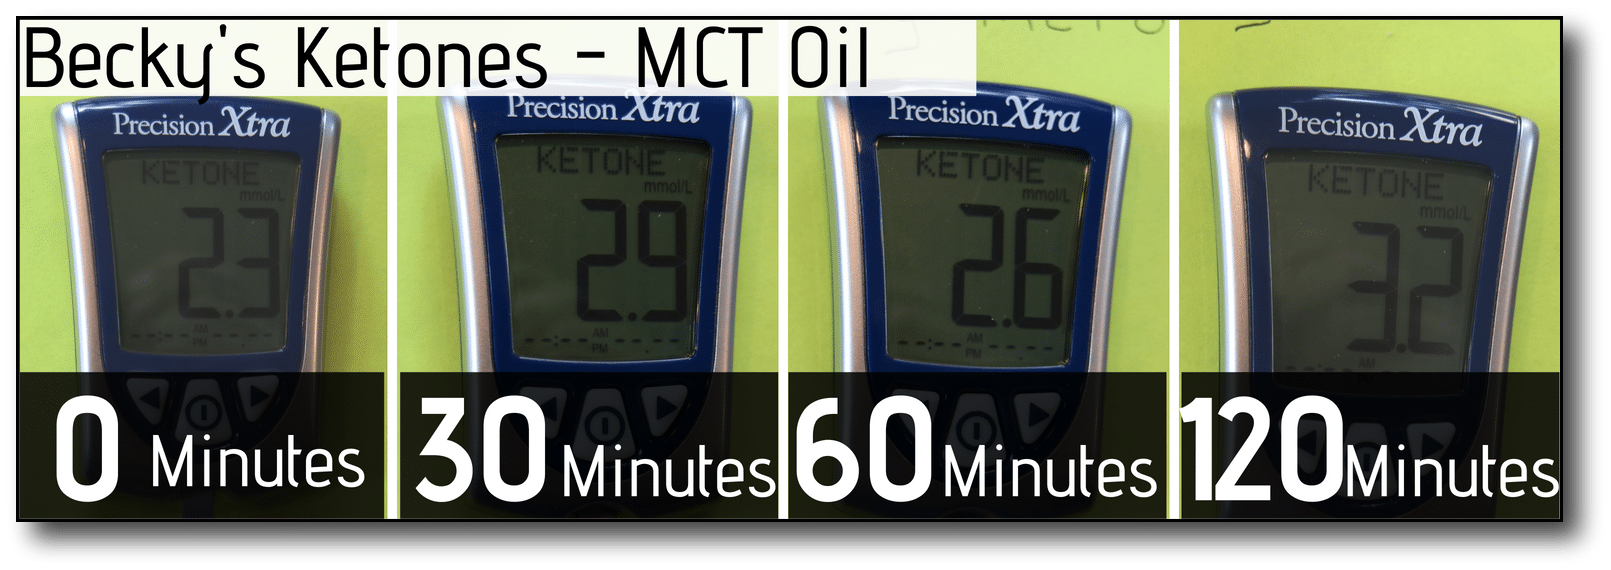 coffee and intermittent fasting-becky ketone mct oil